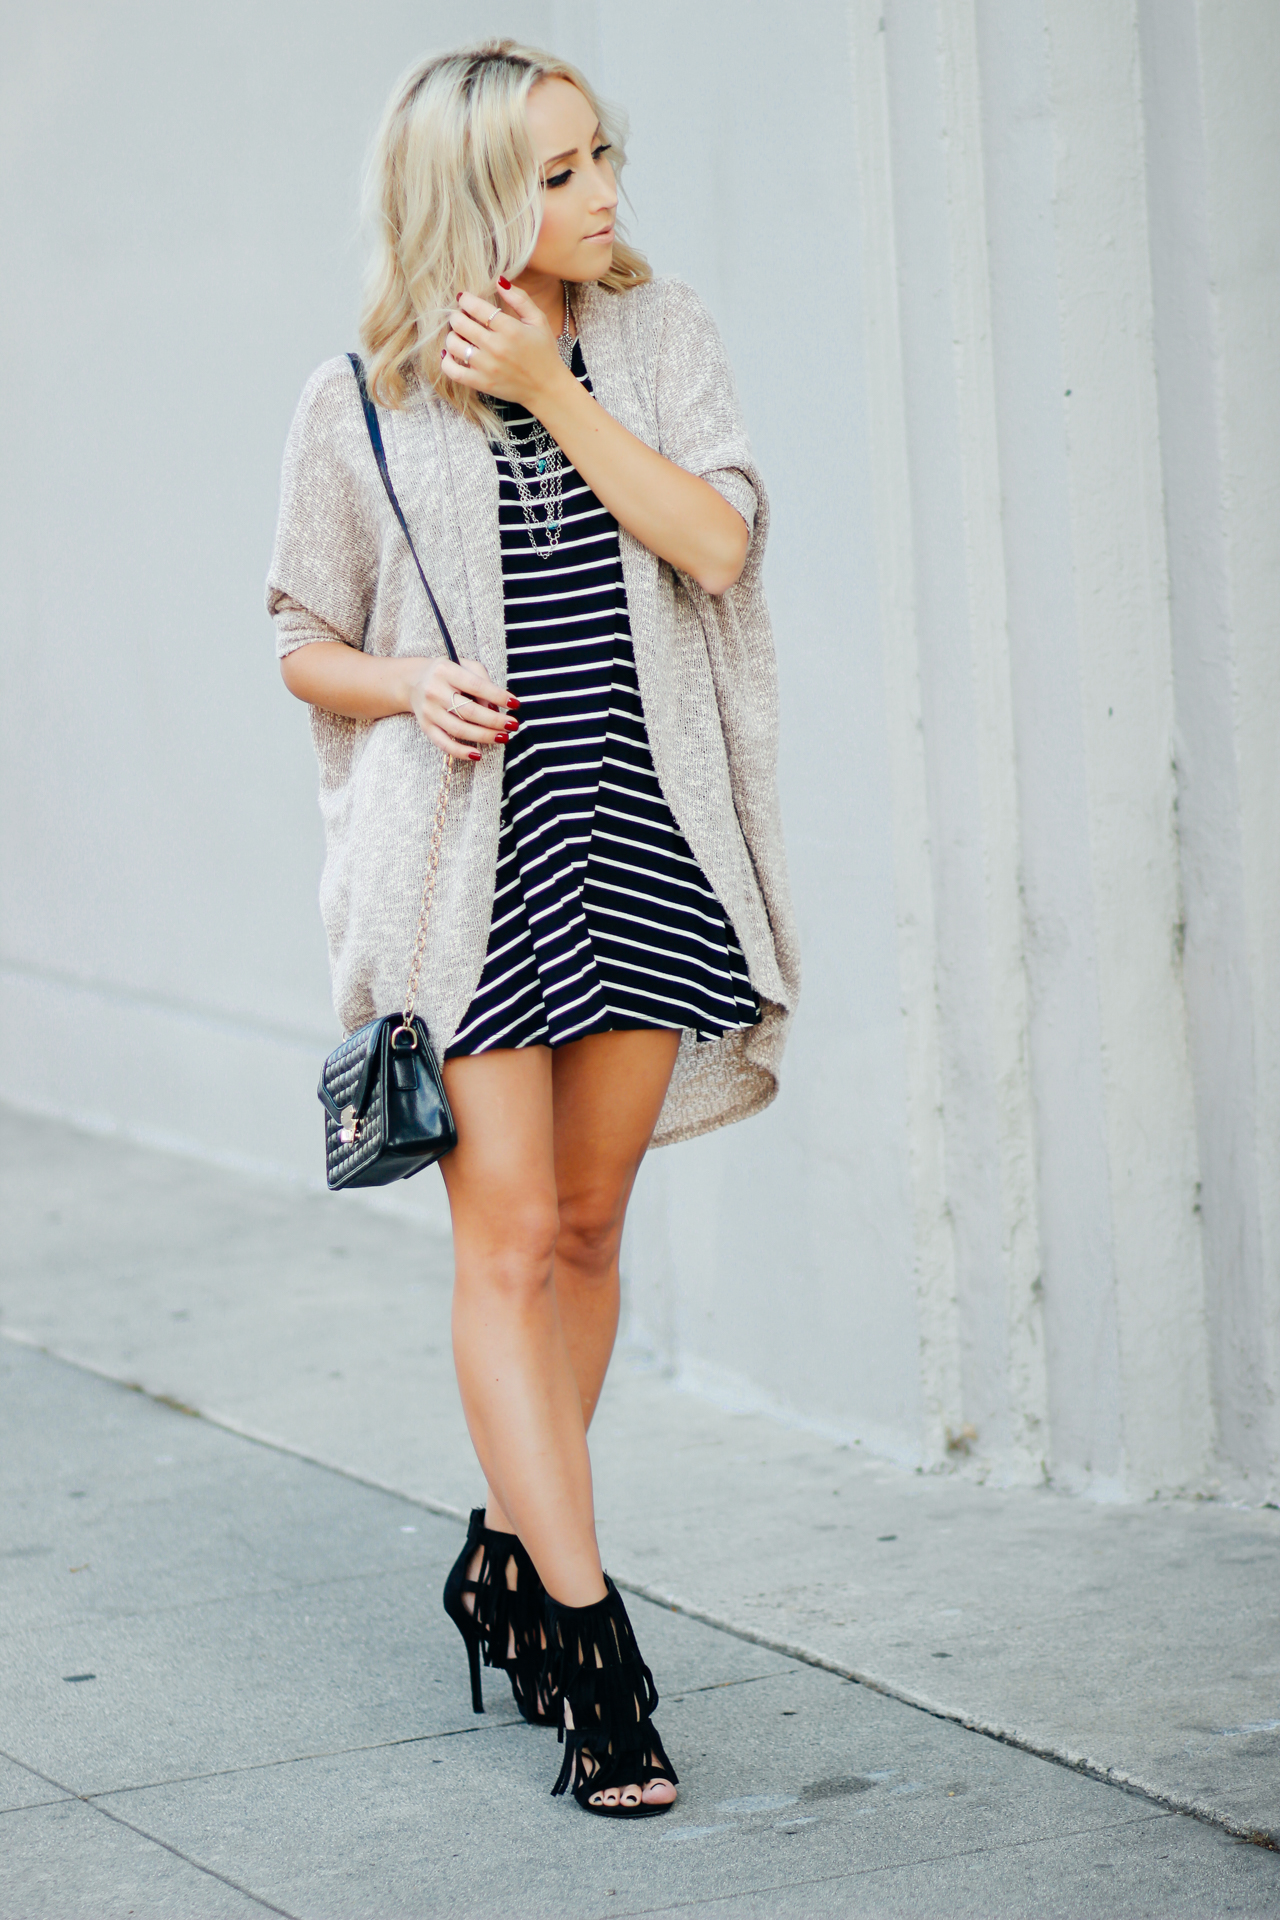 Striped Baby Doll Dress | StyledbyBlondie.com